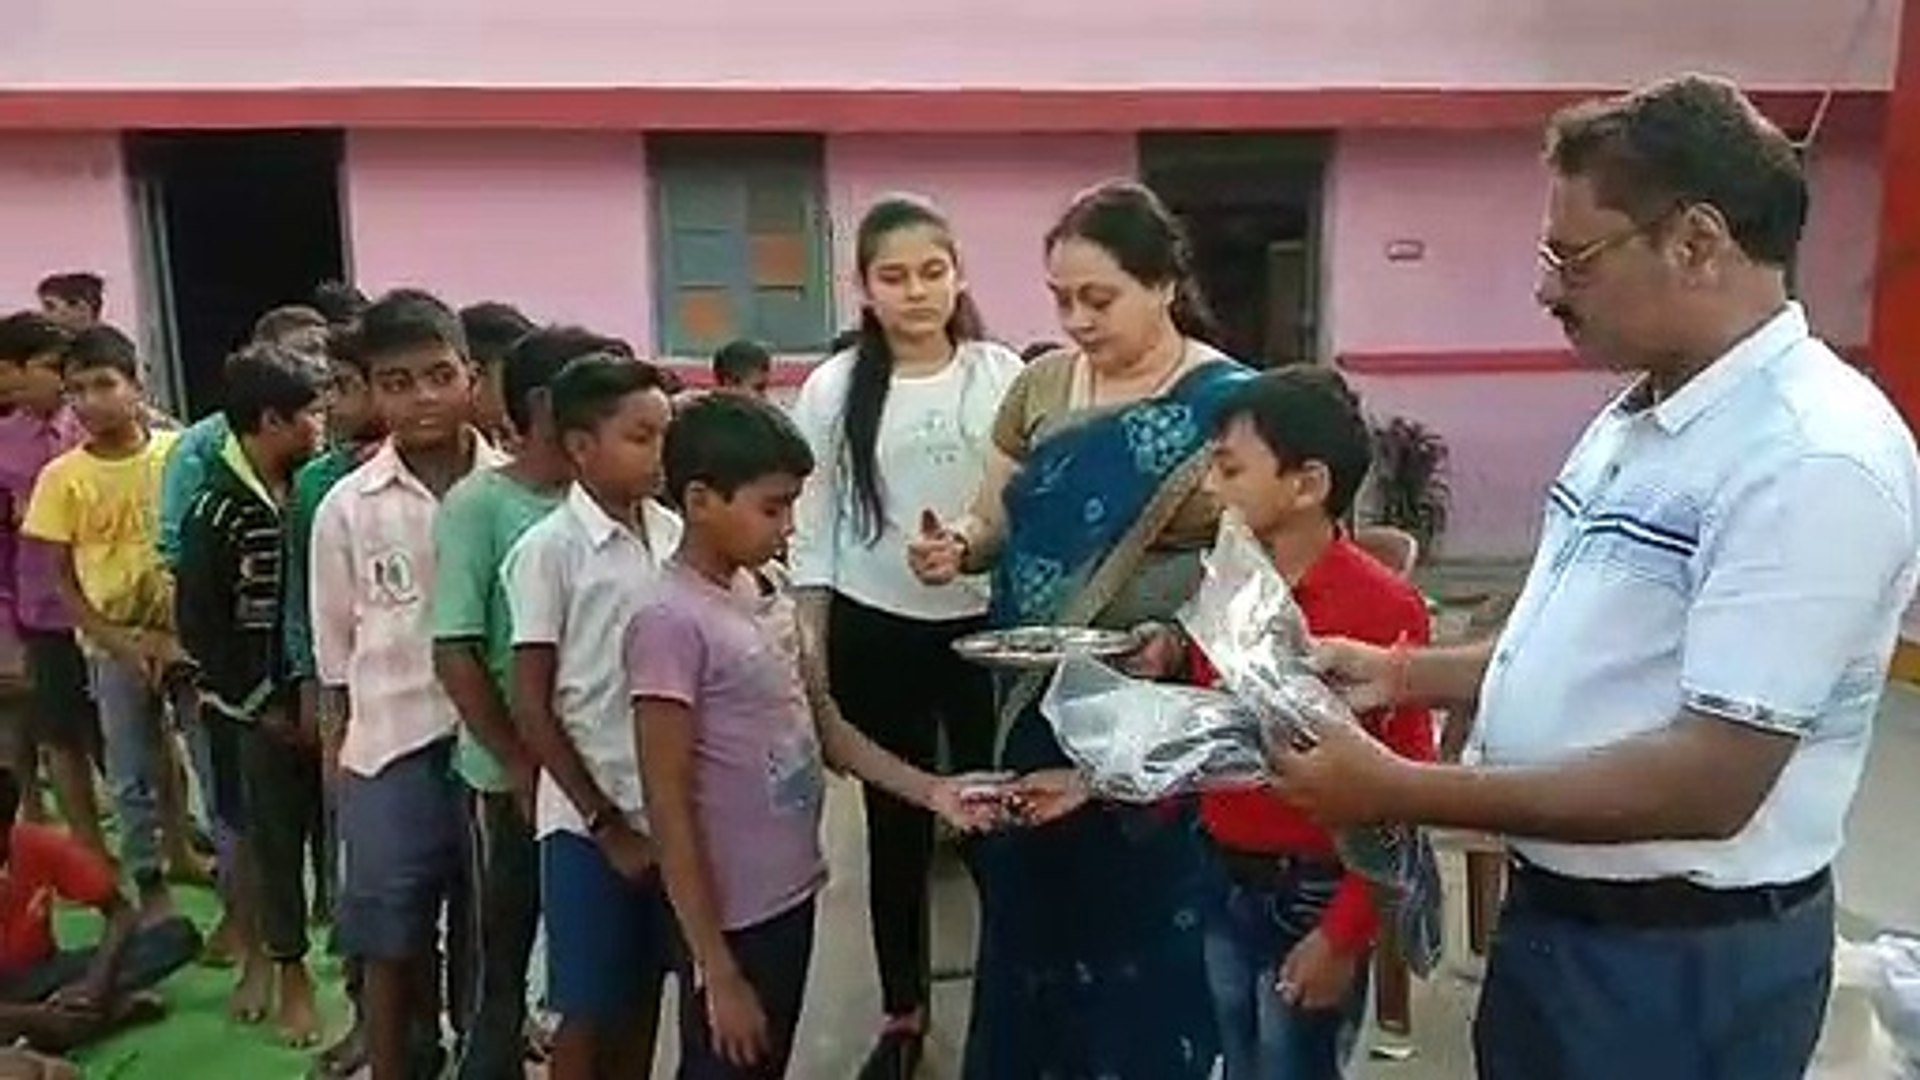 clothes distributed